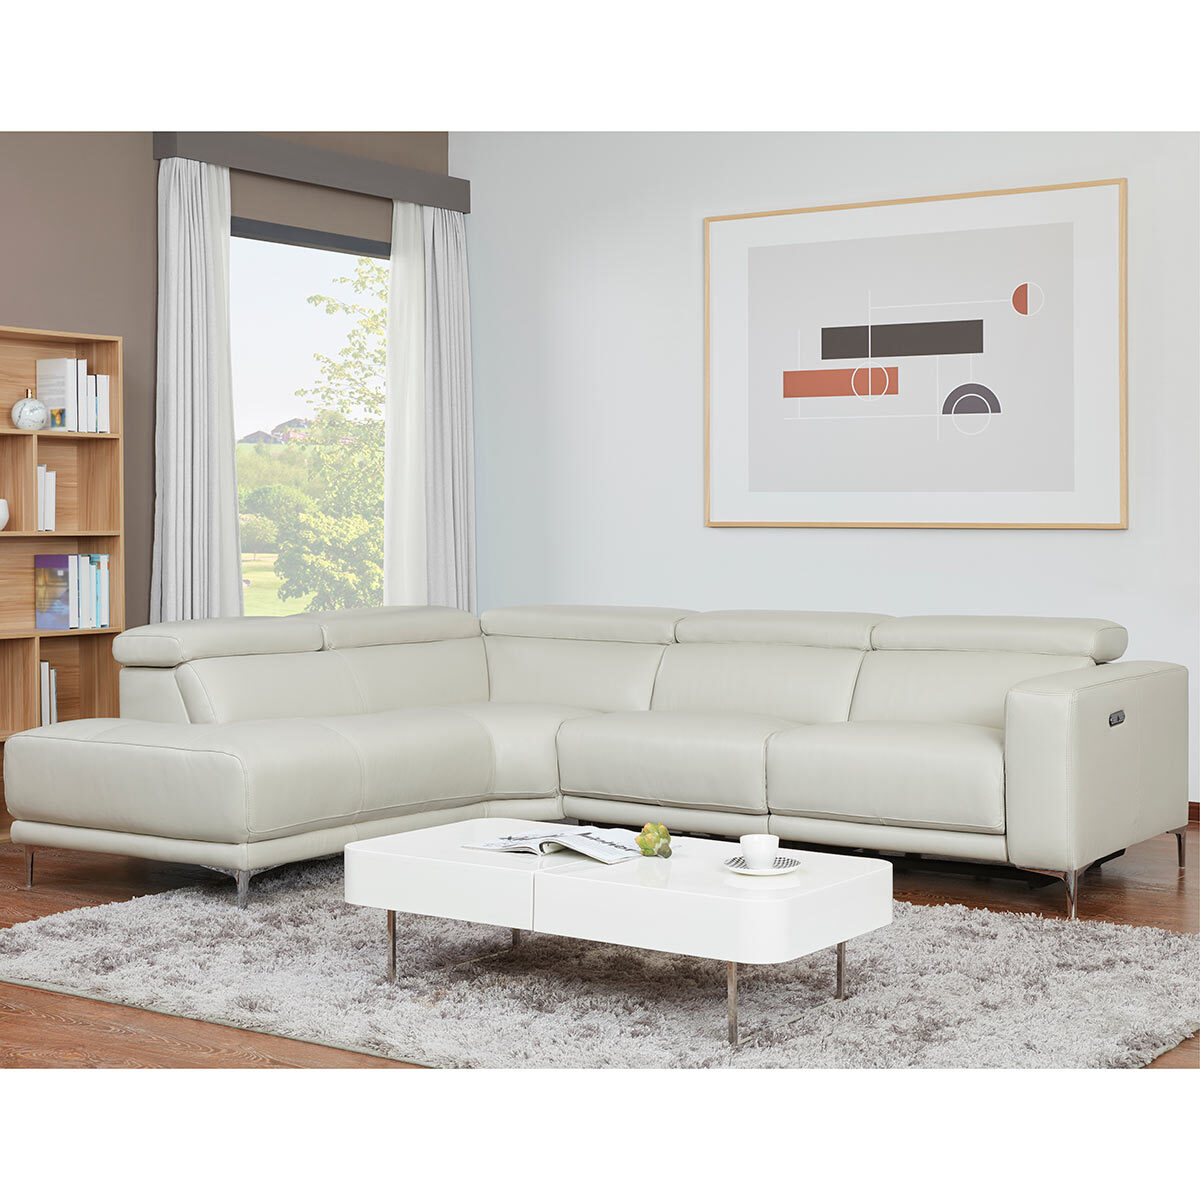 Picture of: Kuka Redland Grey Leather Power Reclining Sectional Sofa Costco Uk